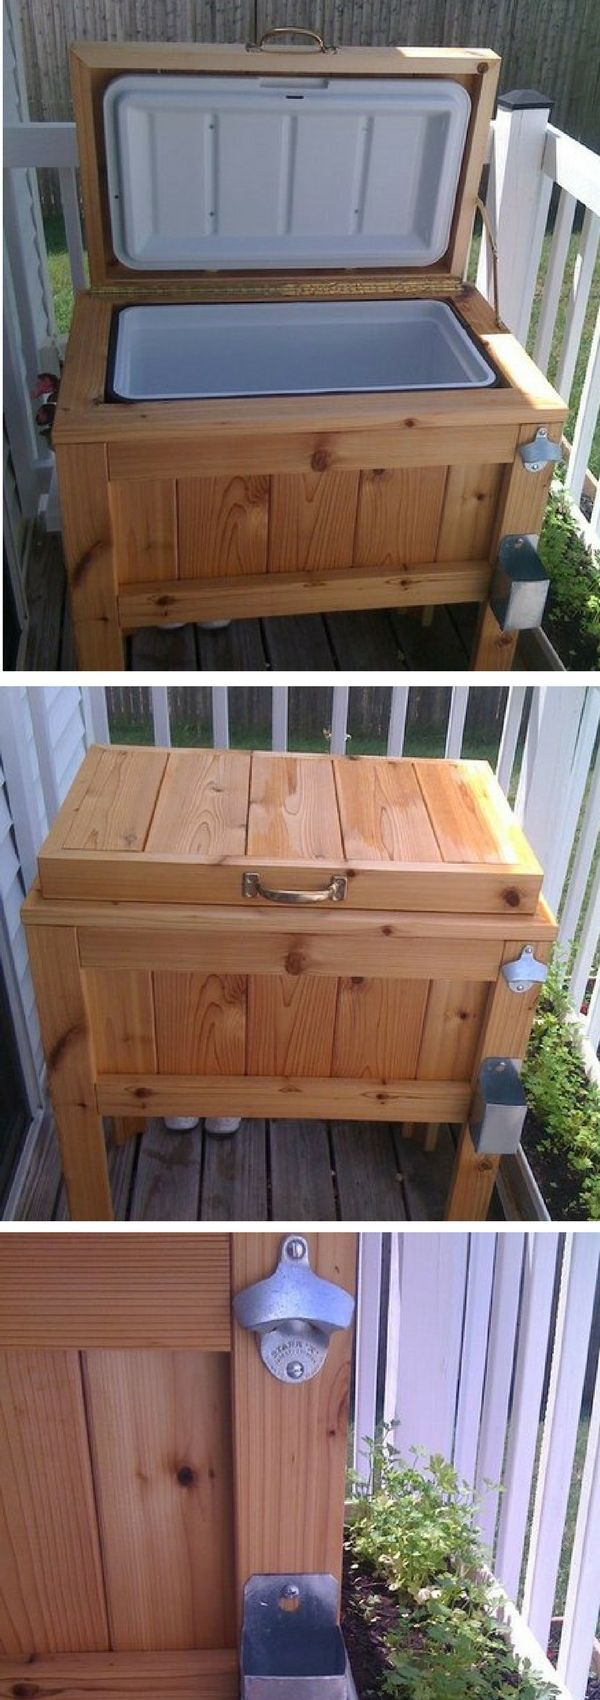 DIY Garden Furniture – 40 simple projects that you can do right away